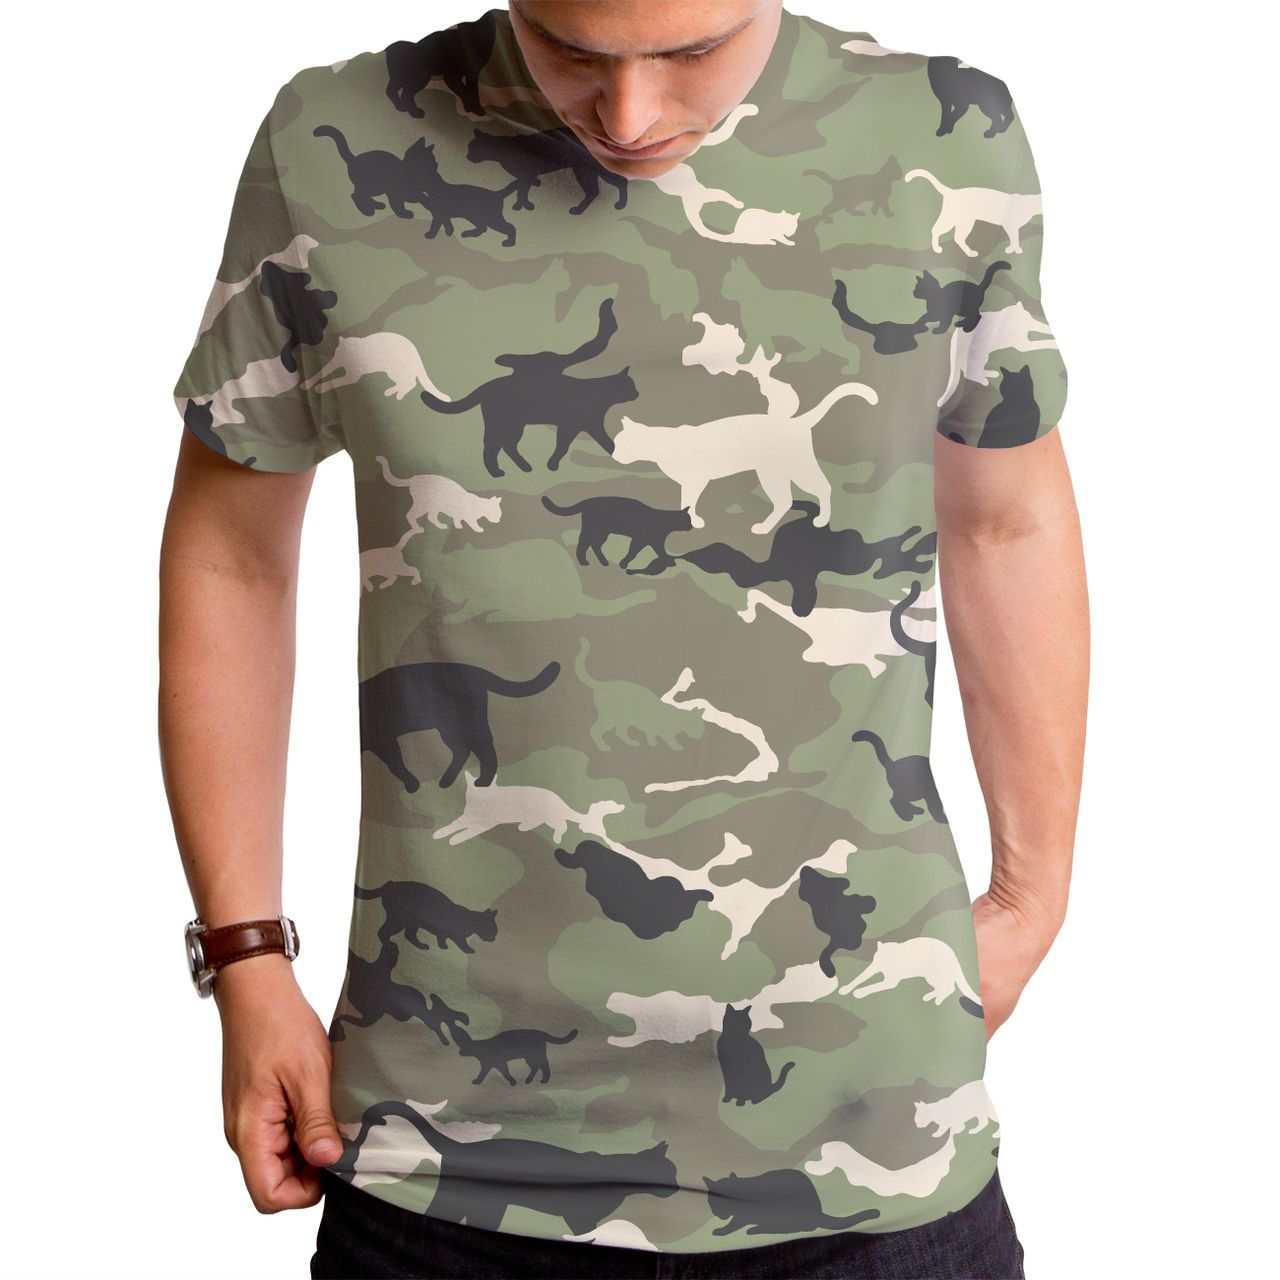 Catmouflage Cat Camo Men s Sublimated T Shirt